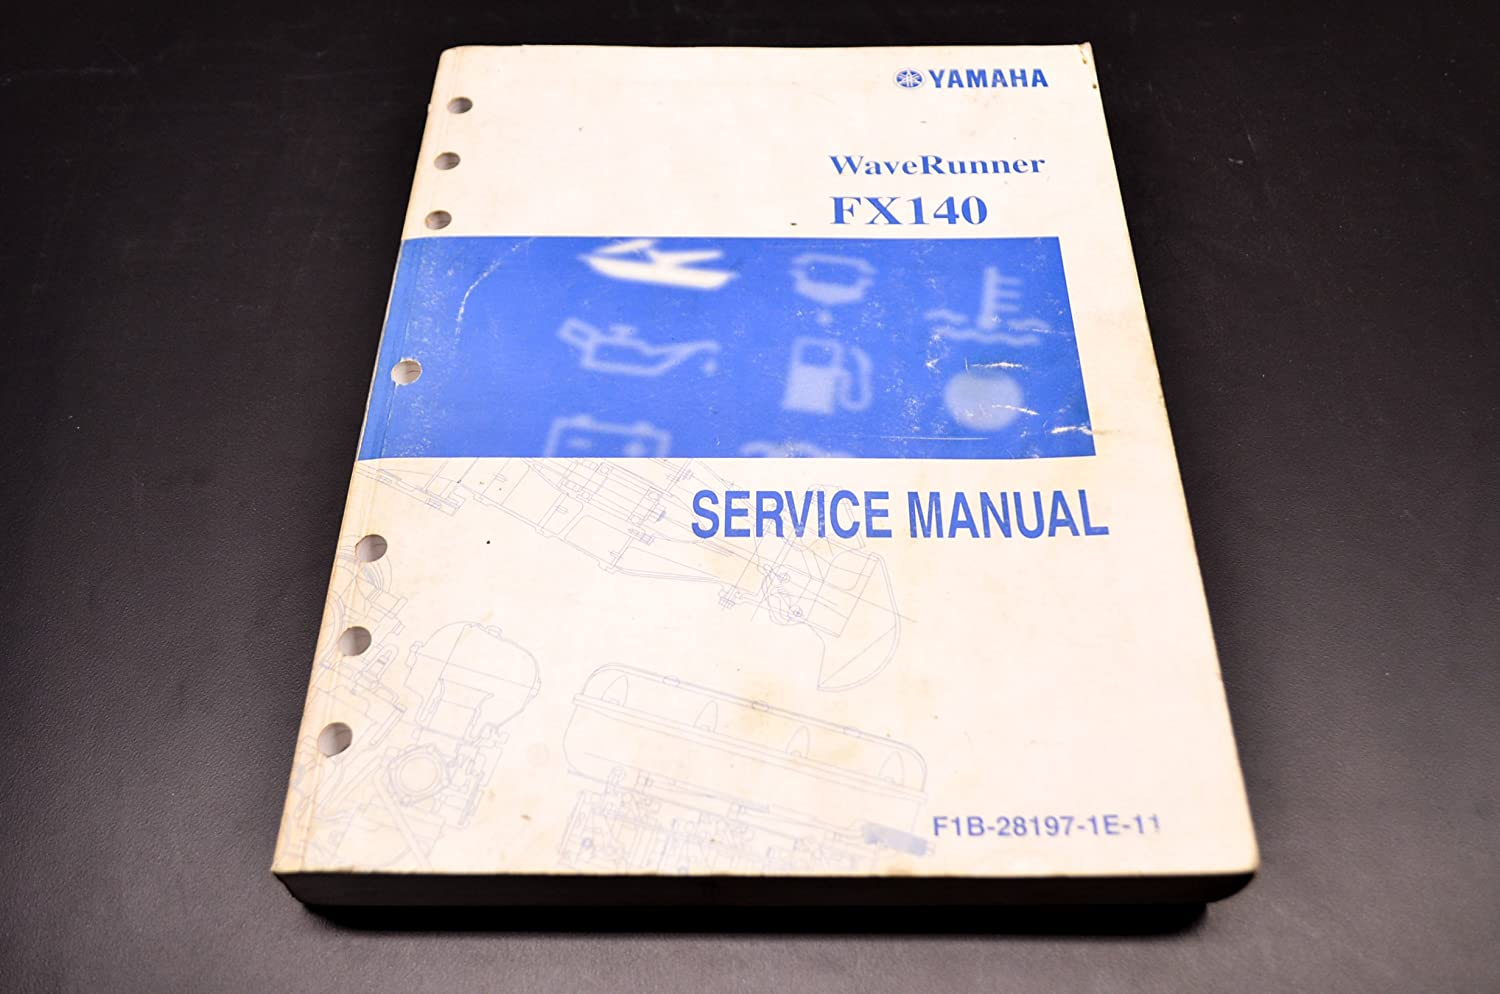 Amazon.com: Yamaha Factory Service Manual / 2002 FX1000A FX140 / Pt #  LIT-18616-02-38: Automotive